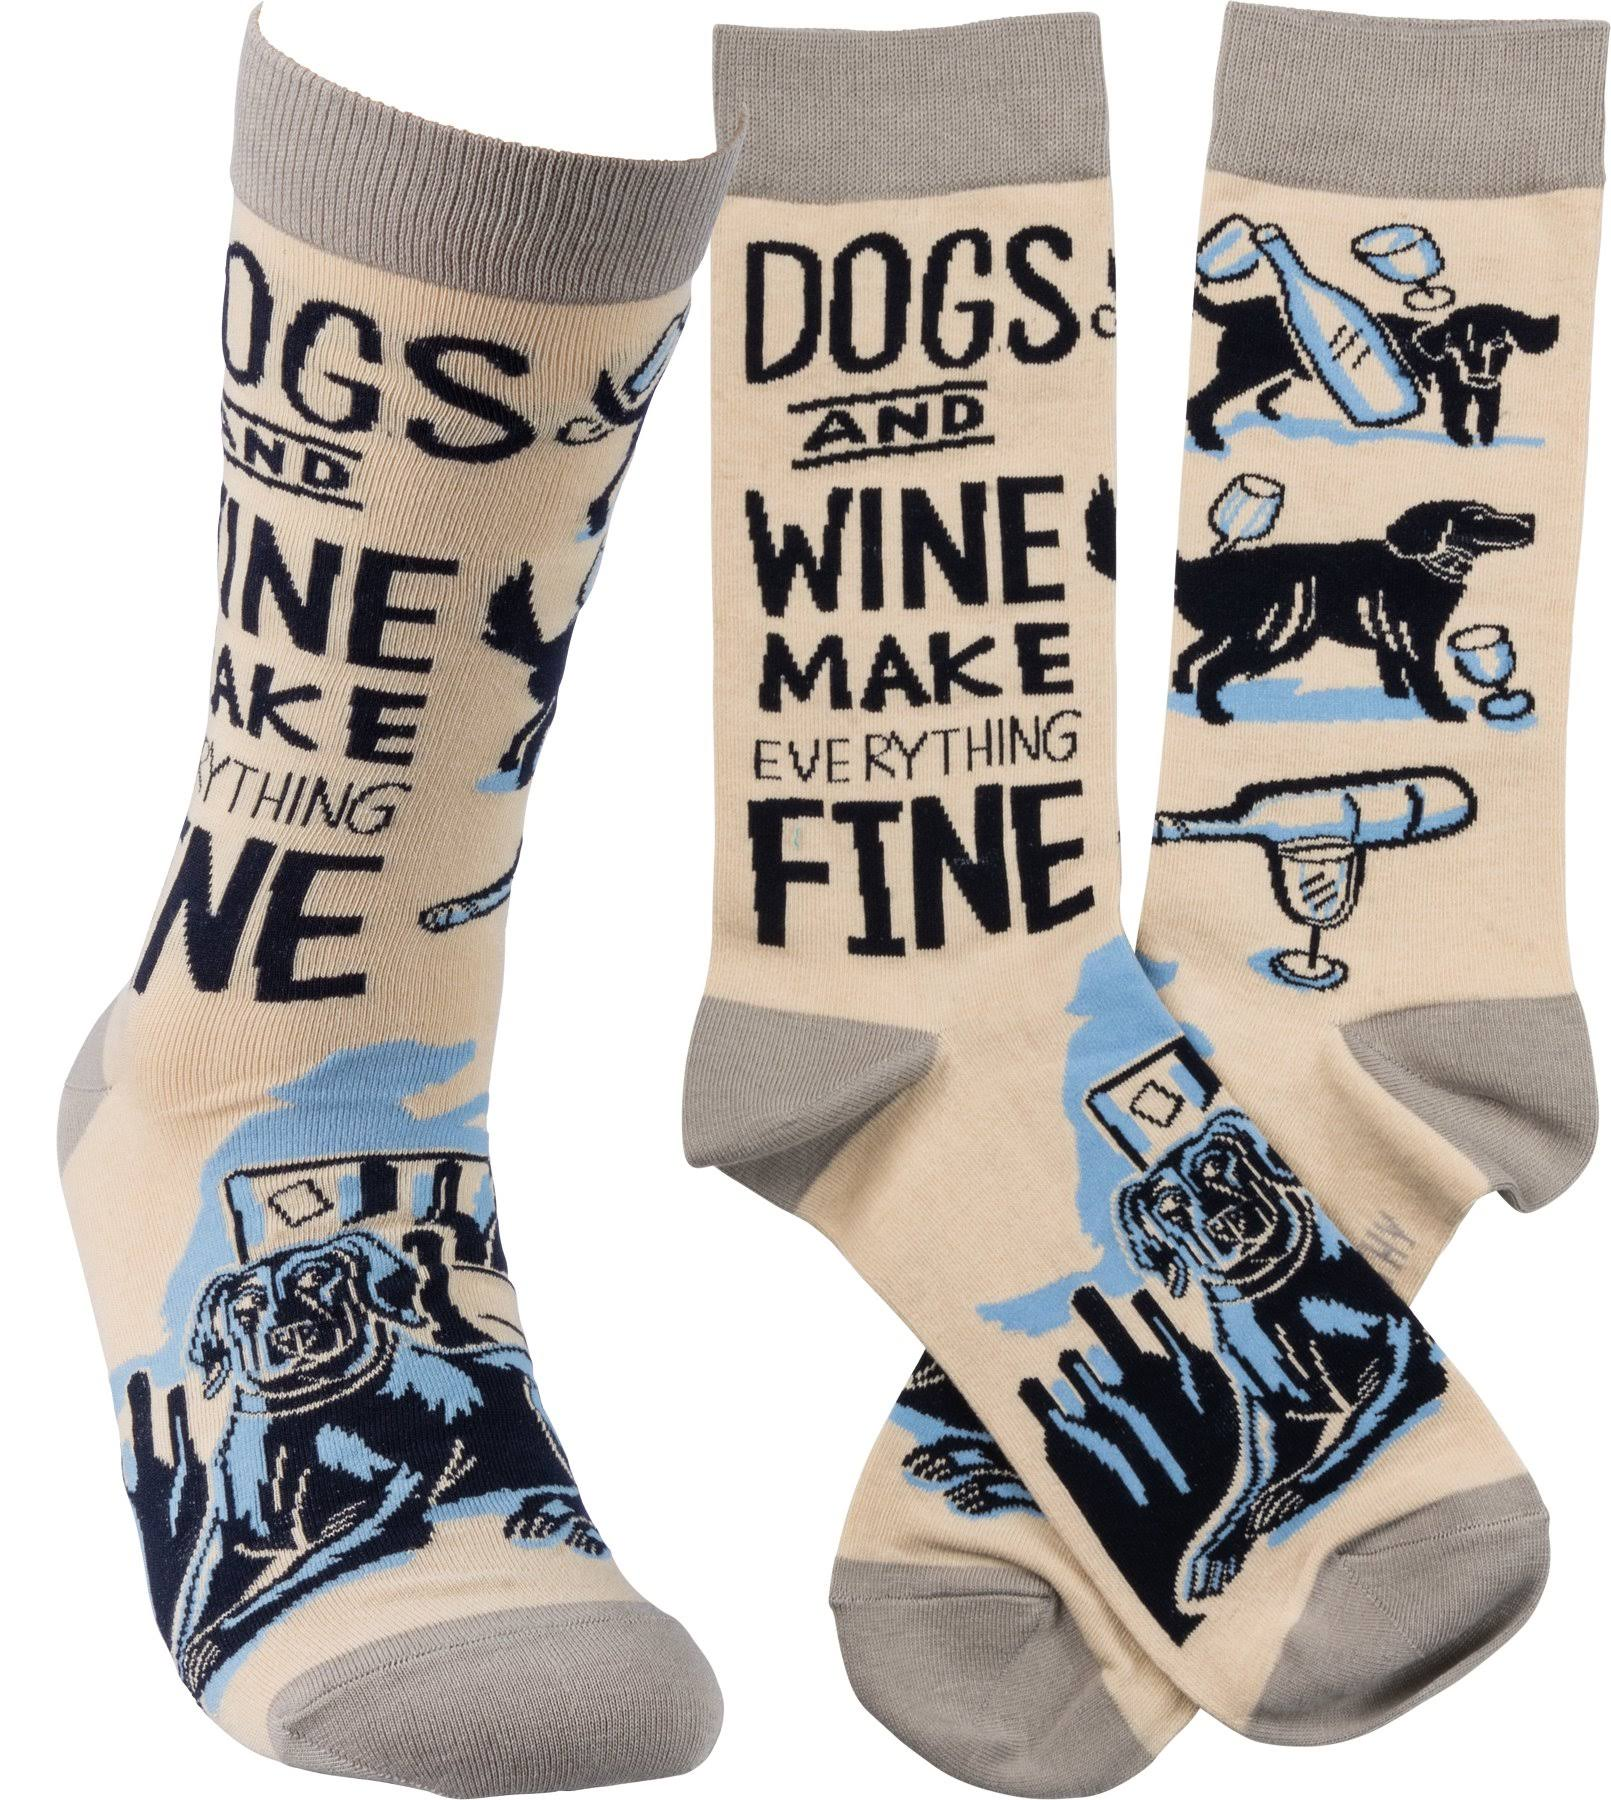 Primitives by Kathy Unisex Crew Socks - Dogs and Wine